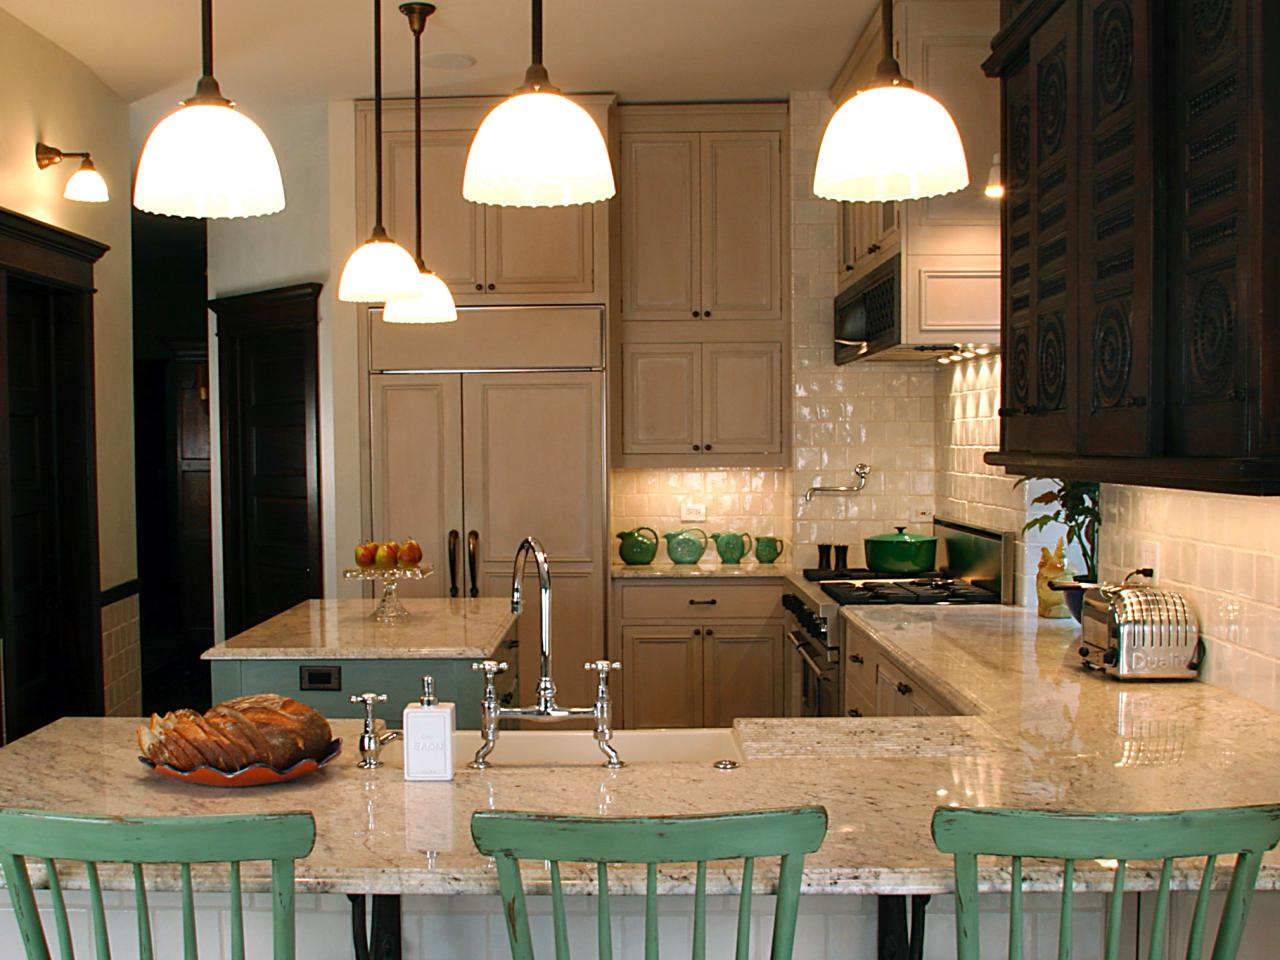 ideas for refacing kitchen cabinets - Kitchen Cabinet Refacing Ideas